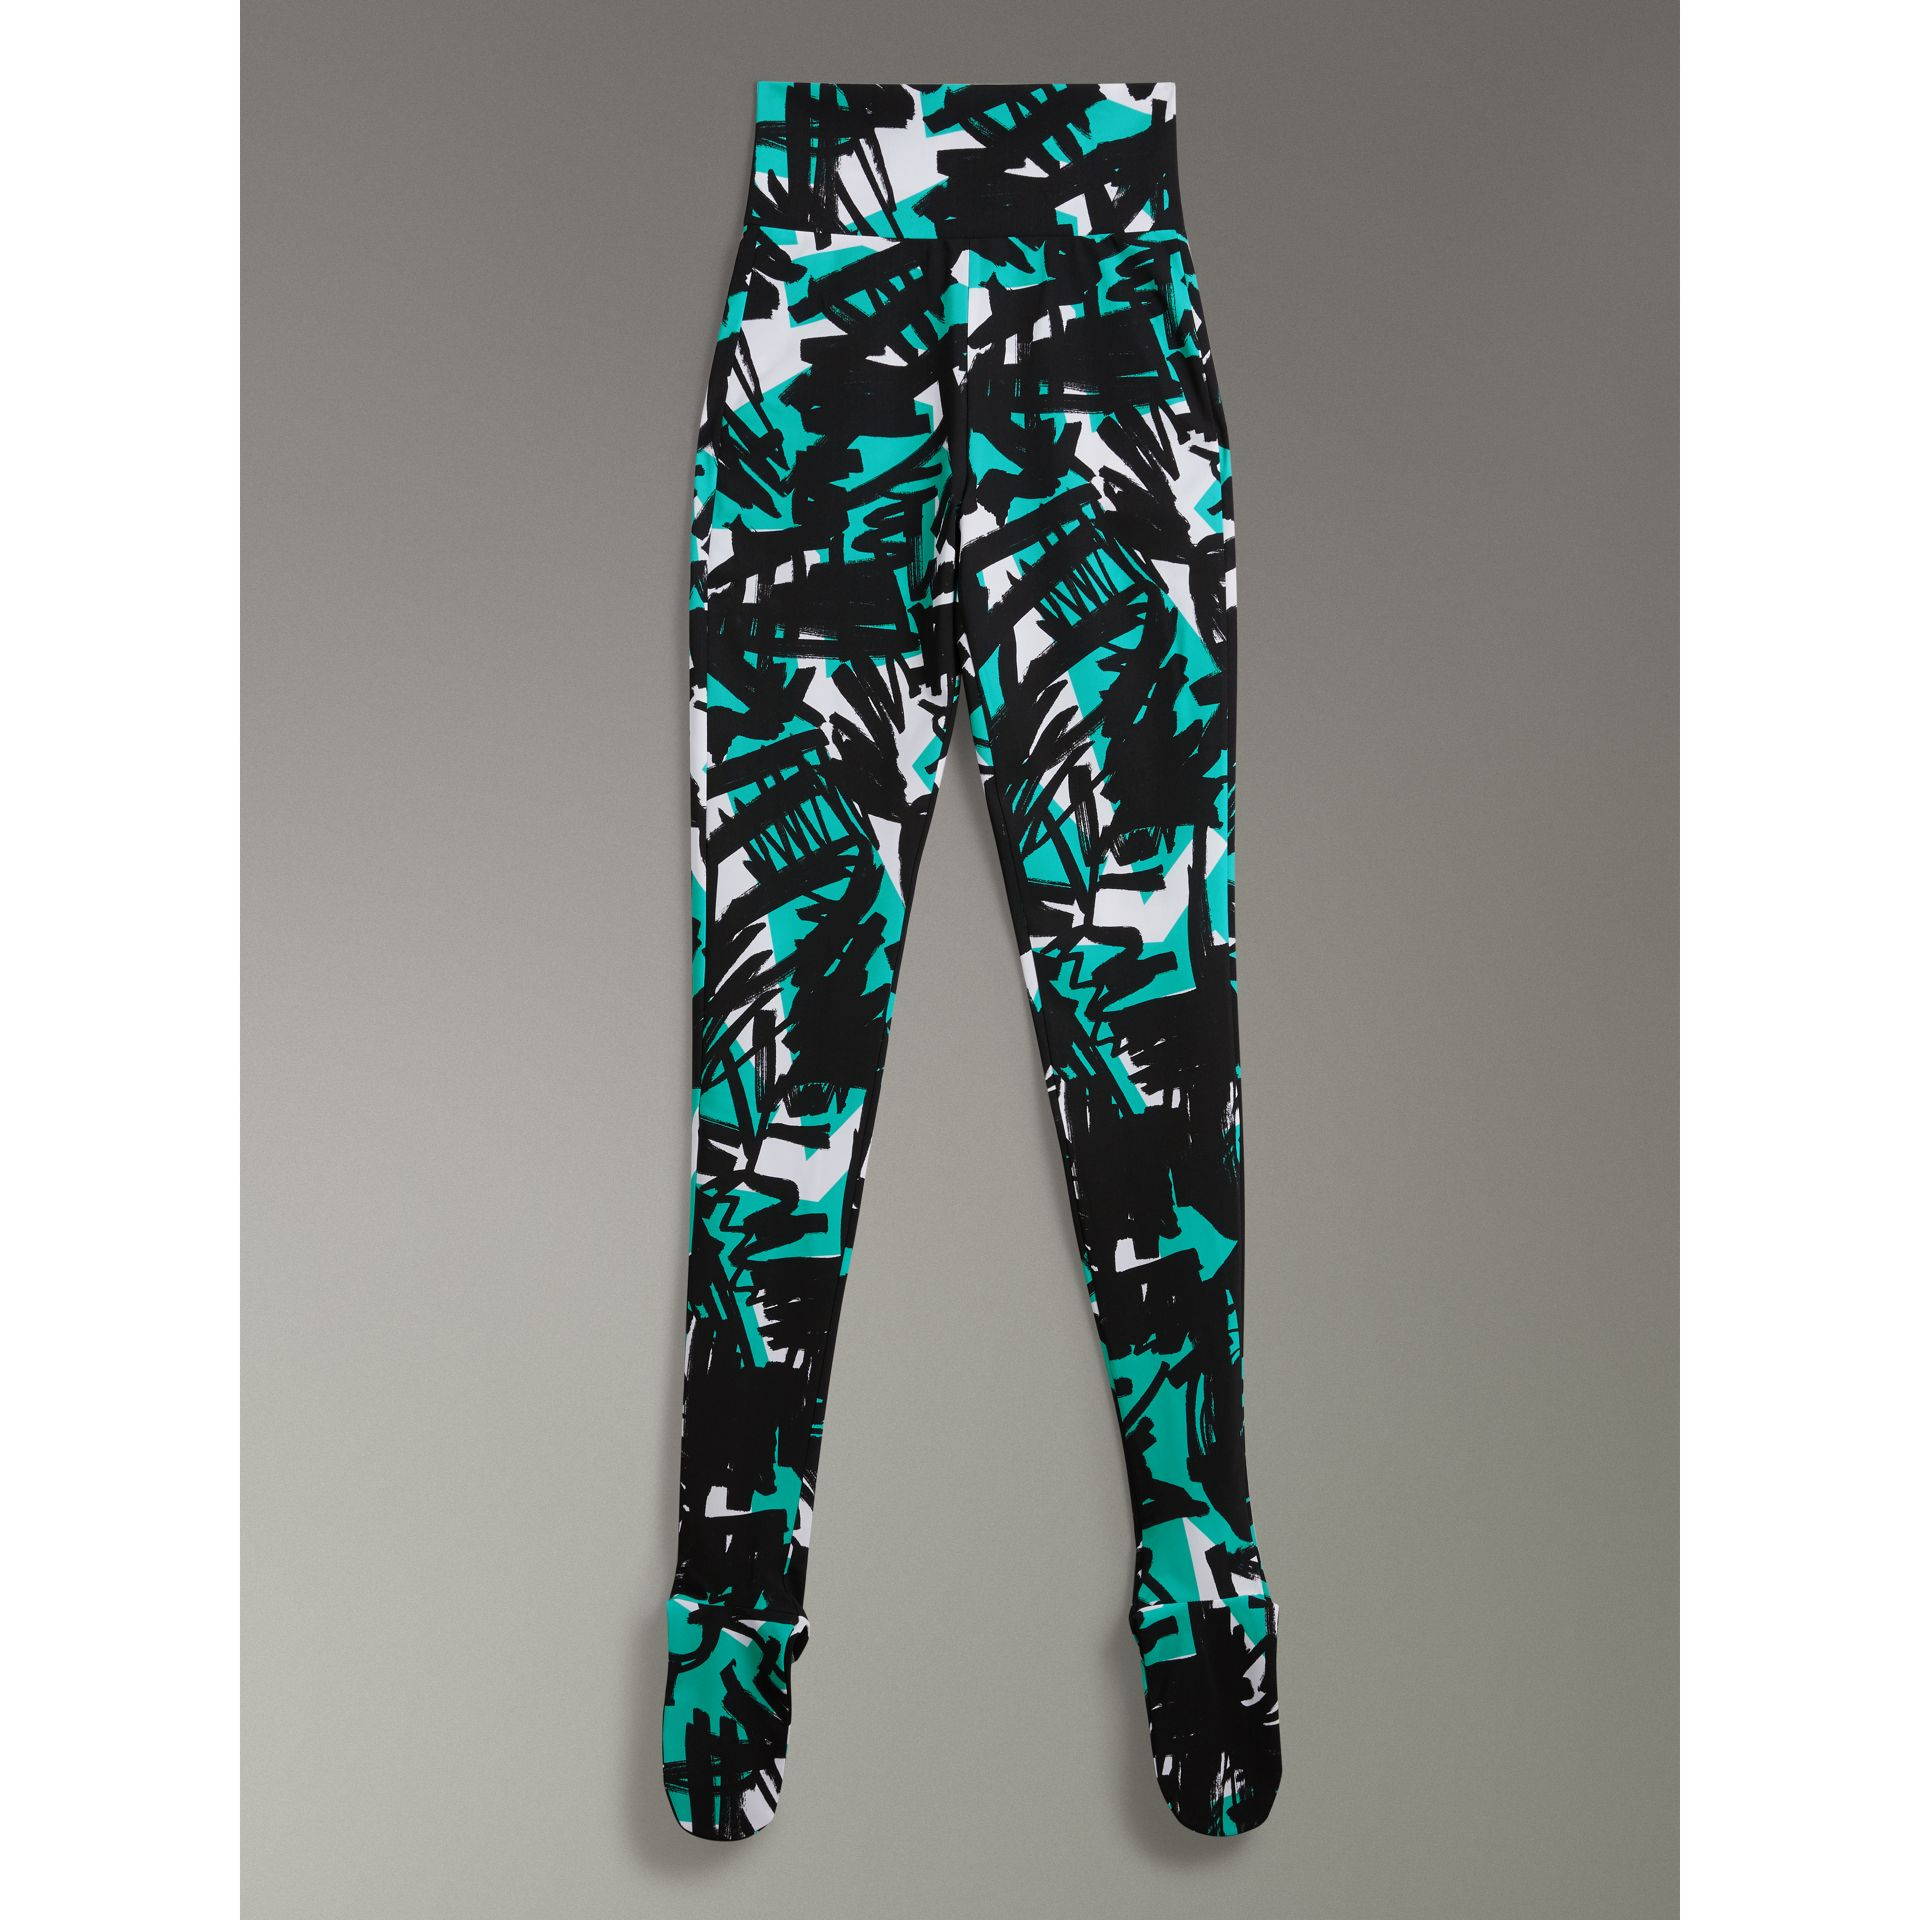 Graffiti Print Leggings in Turquoise - Women | Burberry - gallery image 3